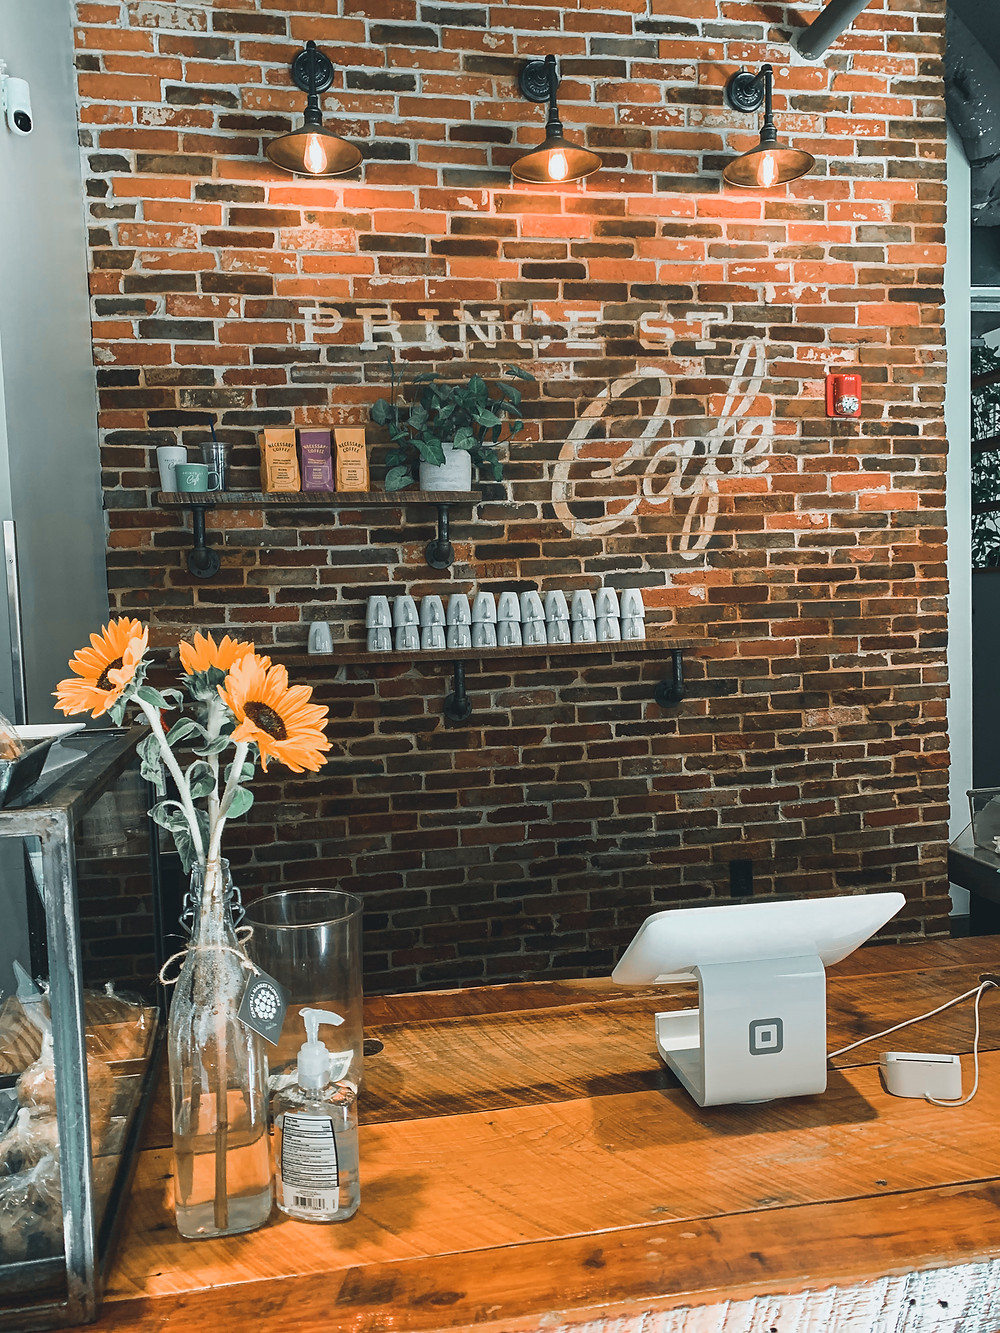 Prince Street Cafe, brick wall, cash register, sunflowers in vase, wood countertop